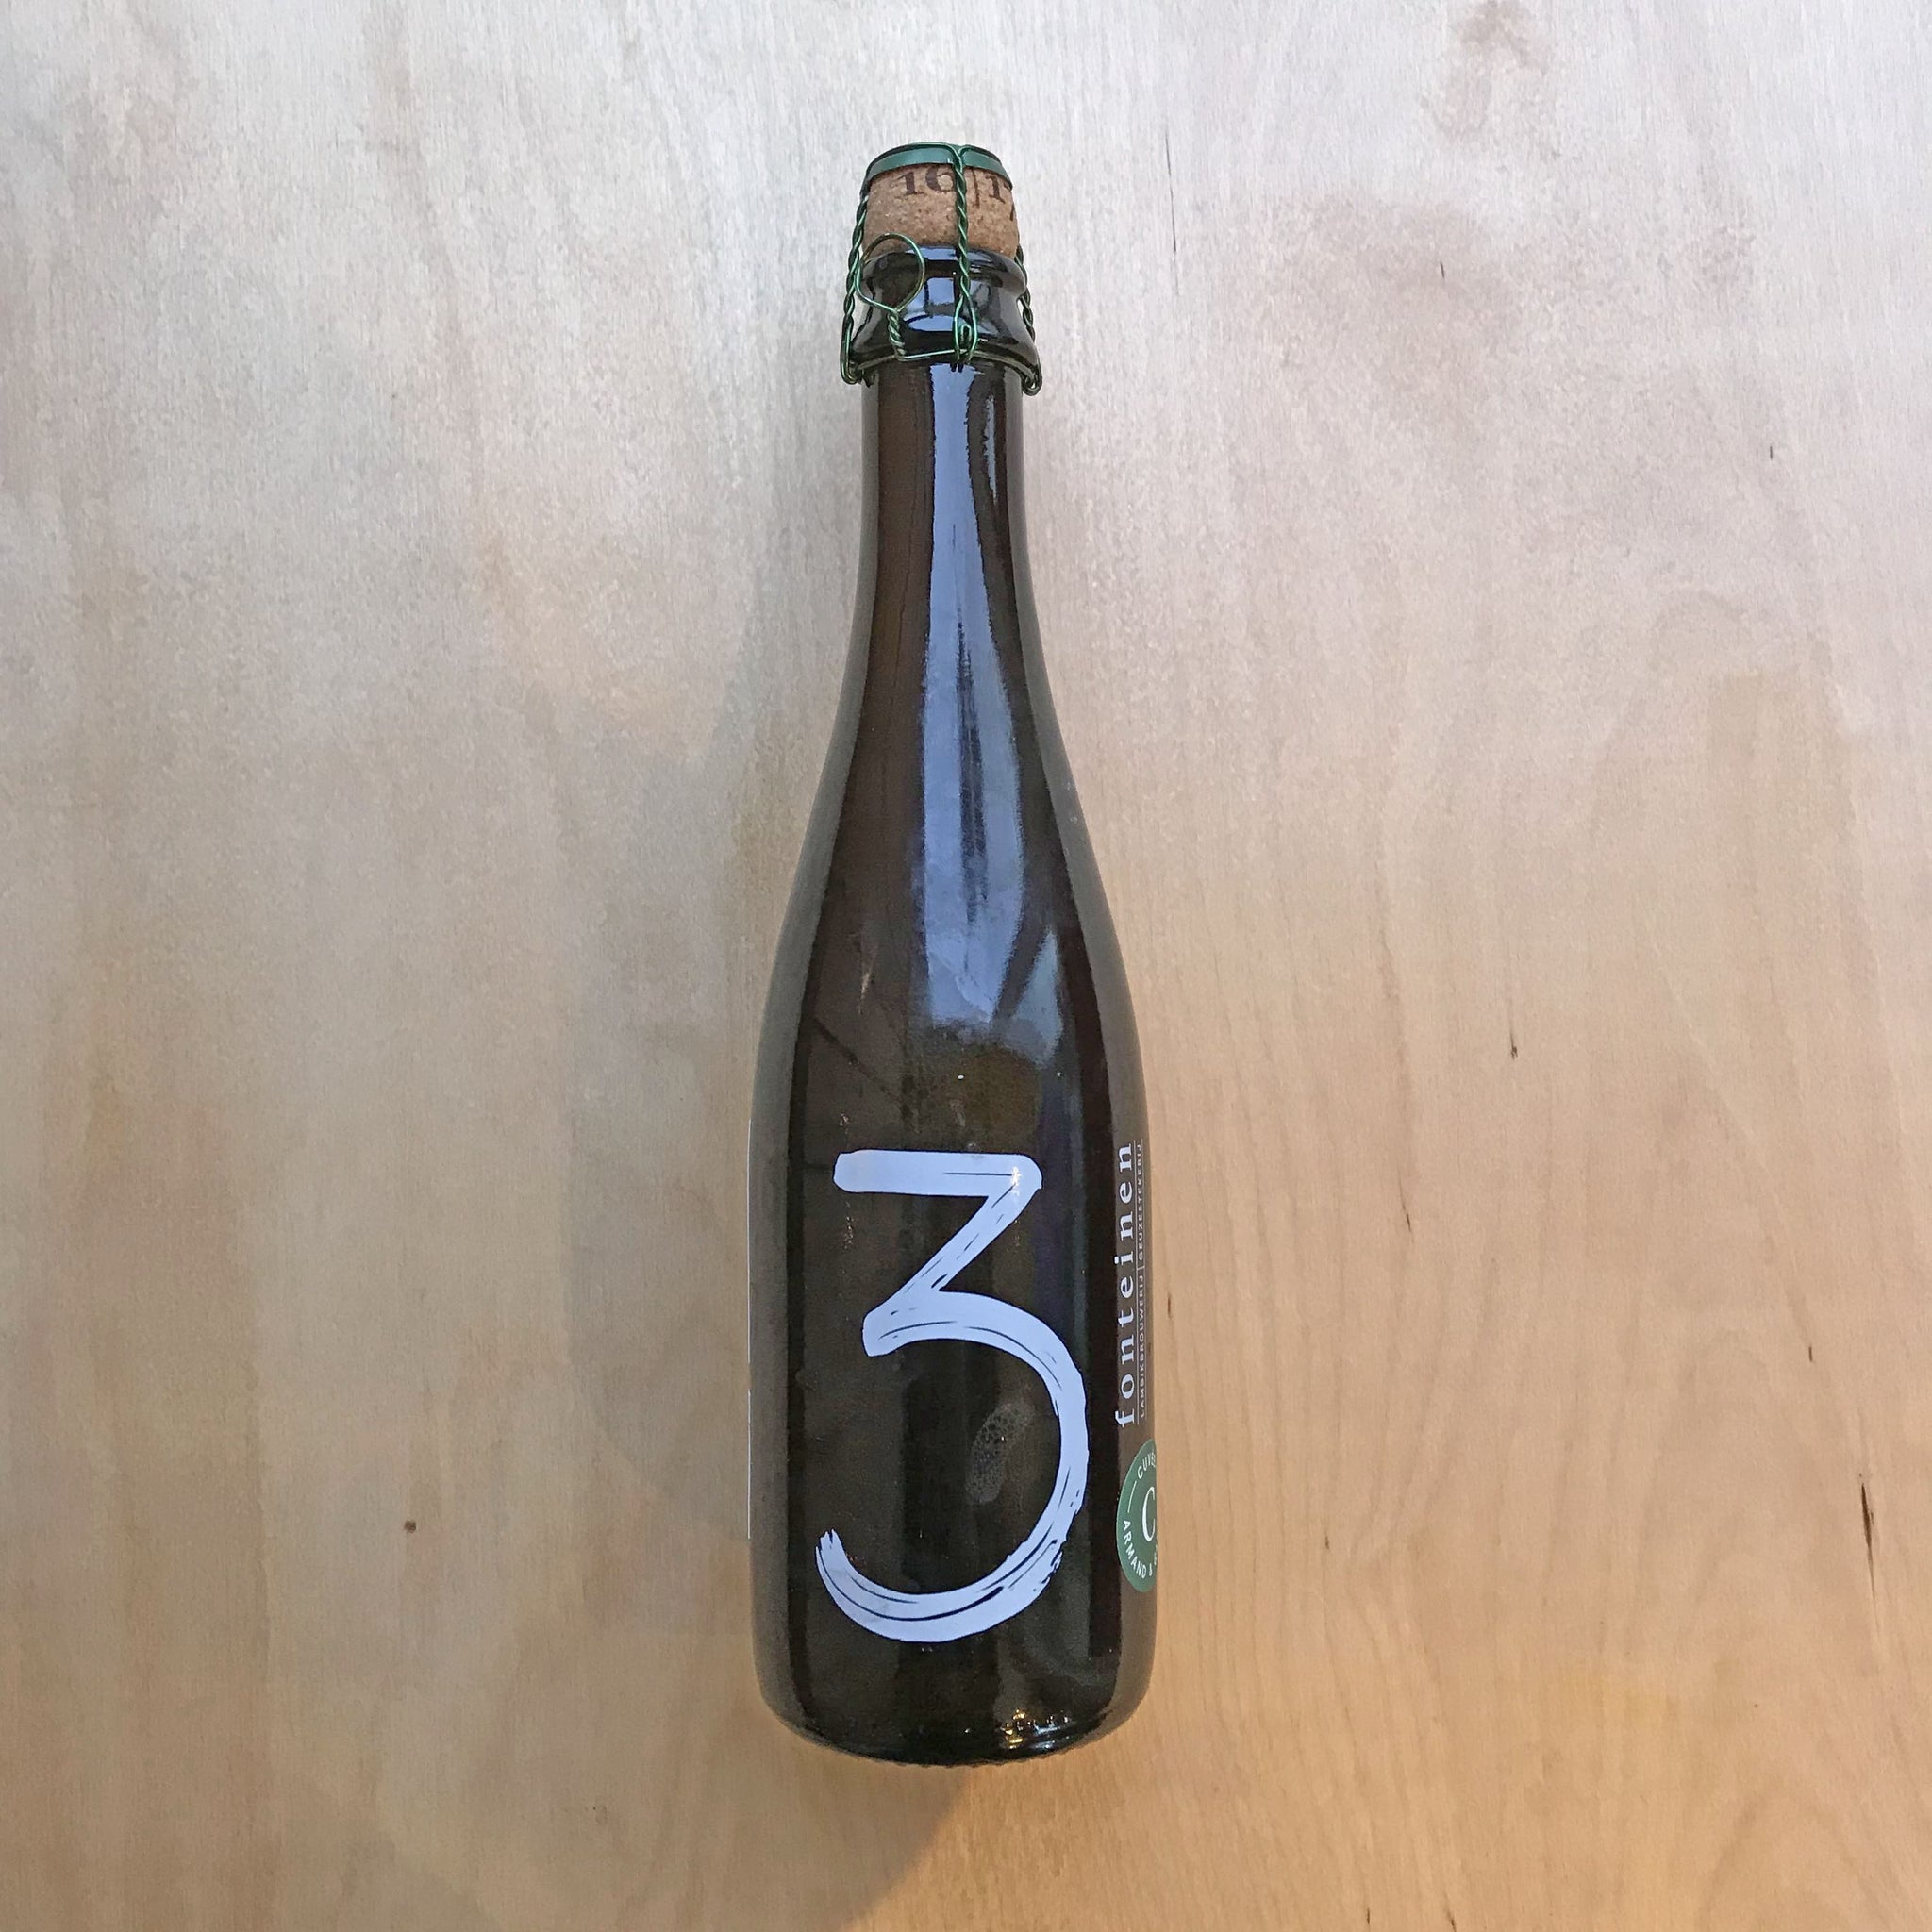 3 Fonteinen Cuvee Armand & Gaston 2017 5.4% (375ml)